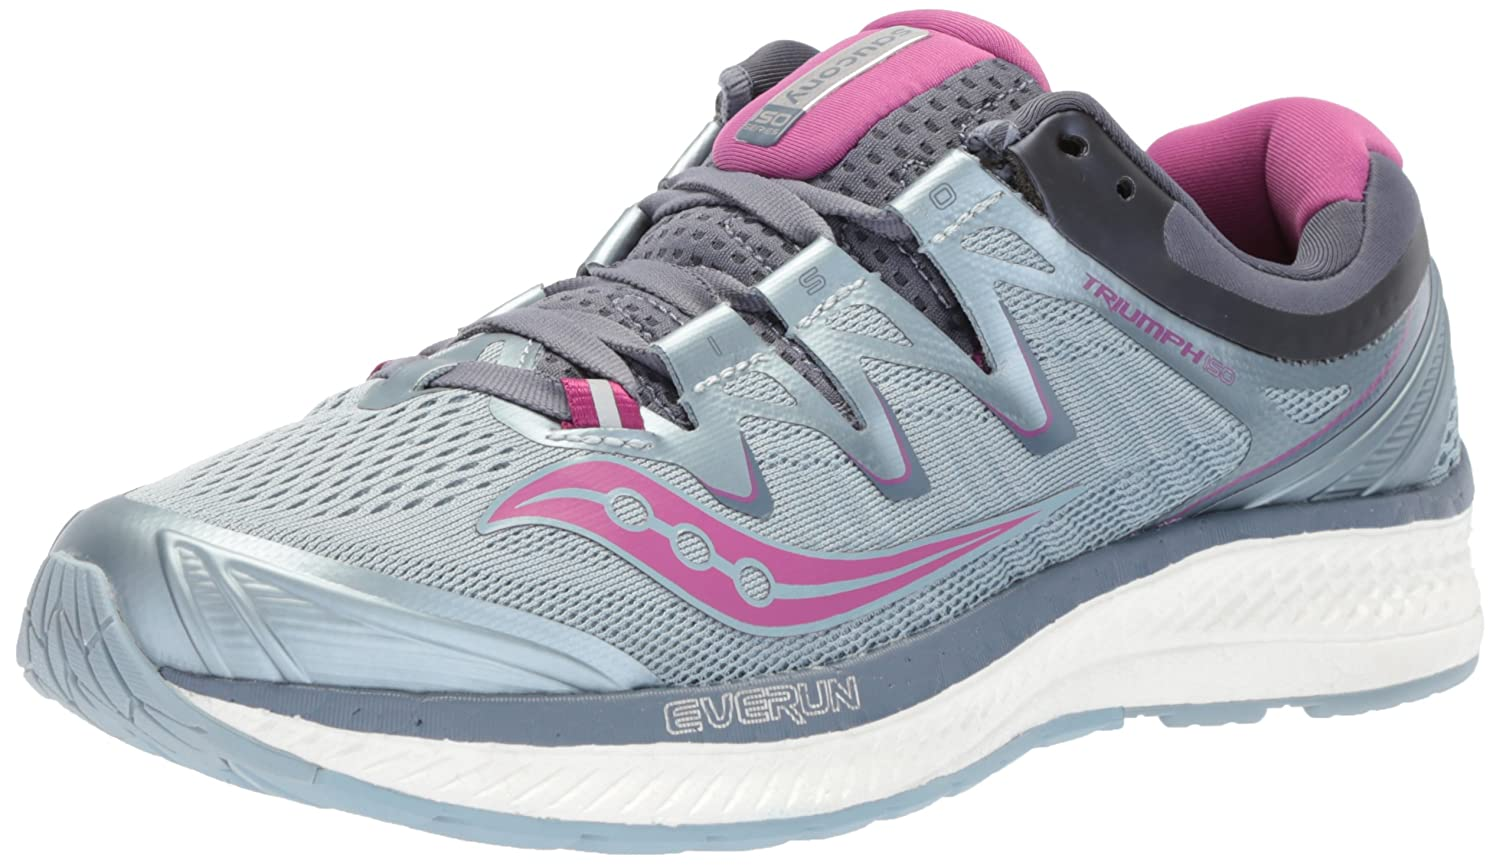 Fog Grey Saucony Women's Triumph ISO 4 Running shoes